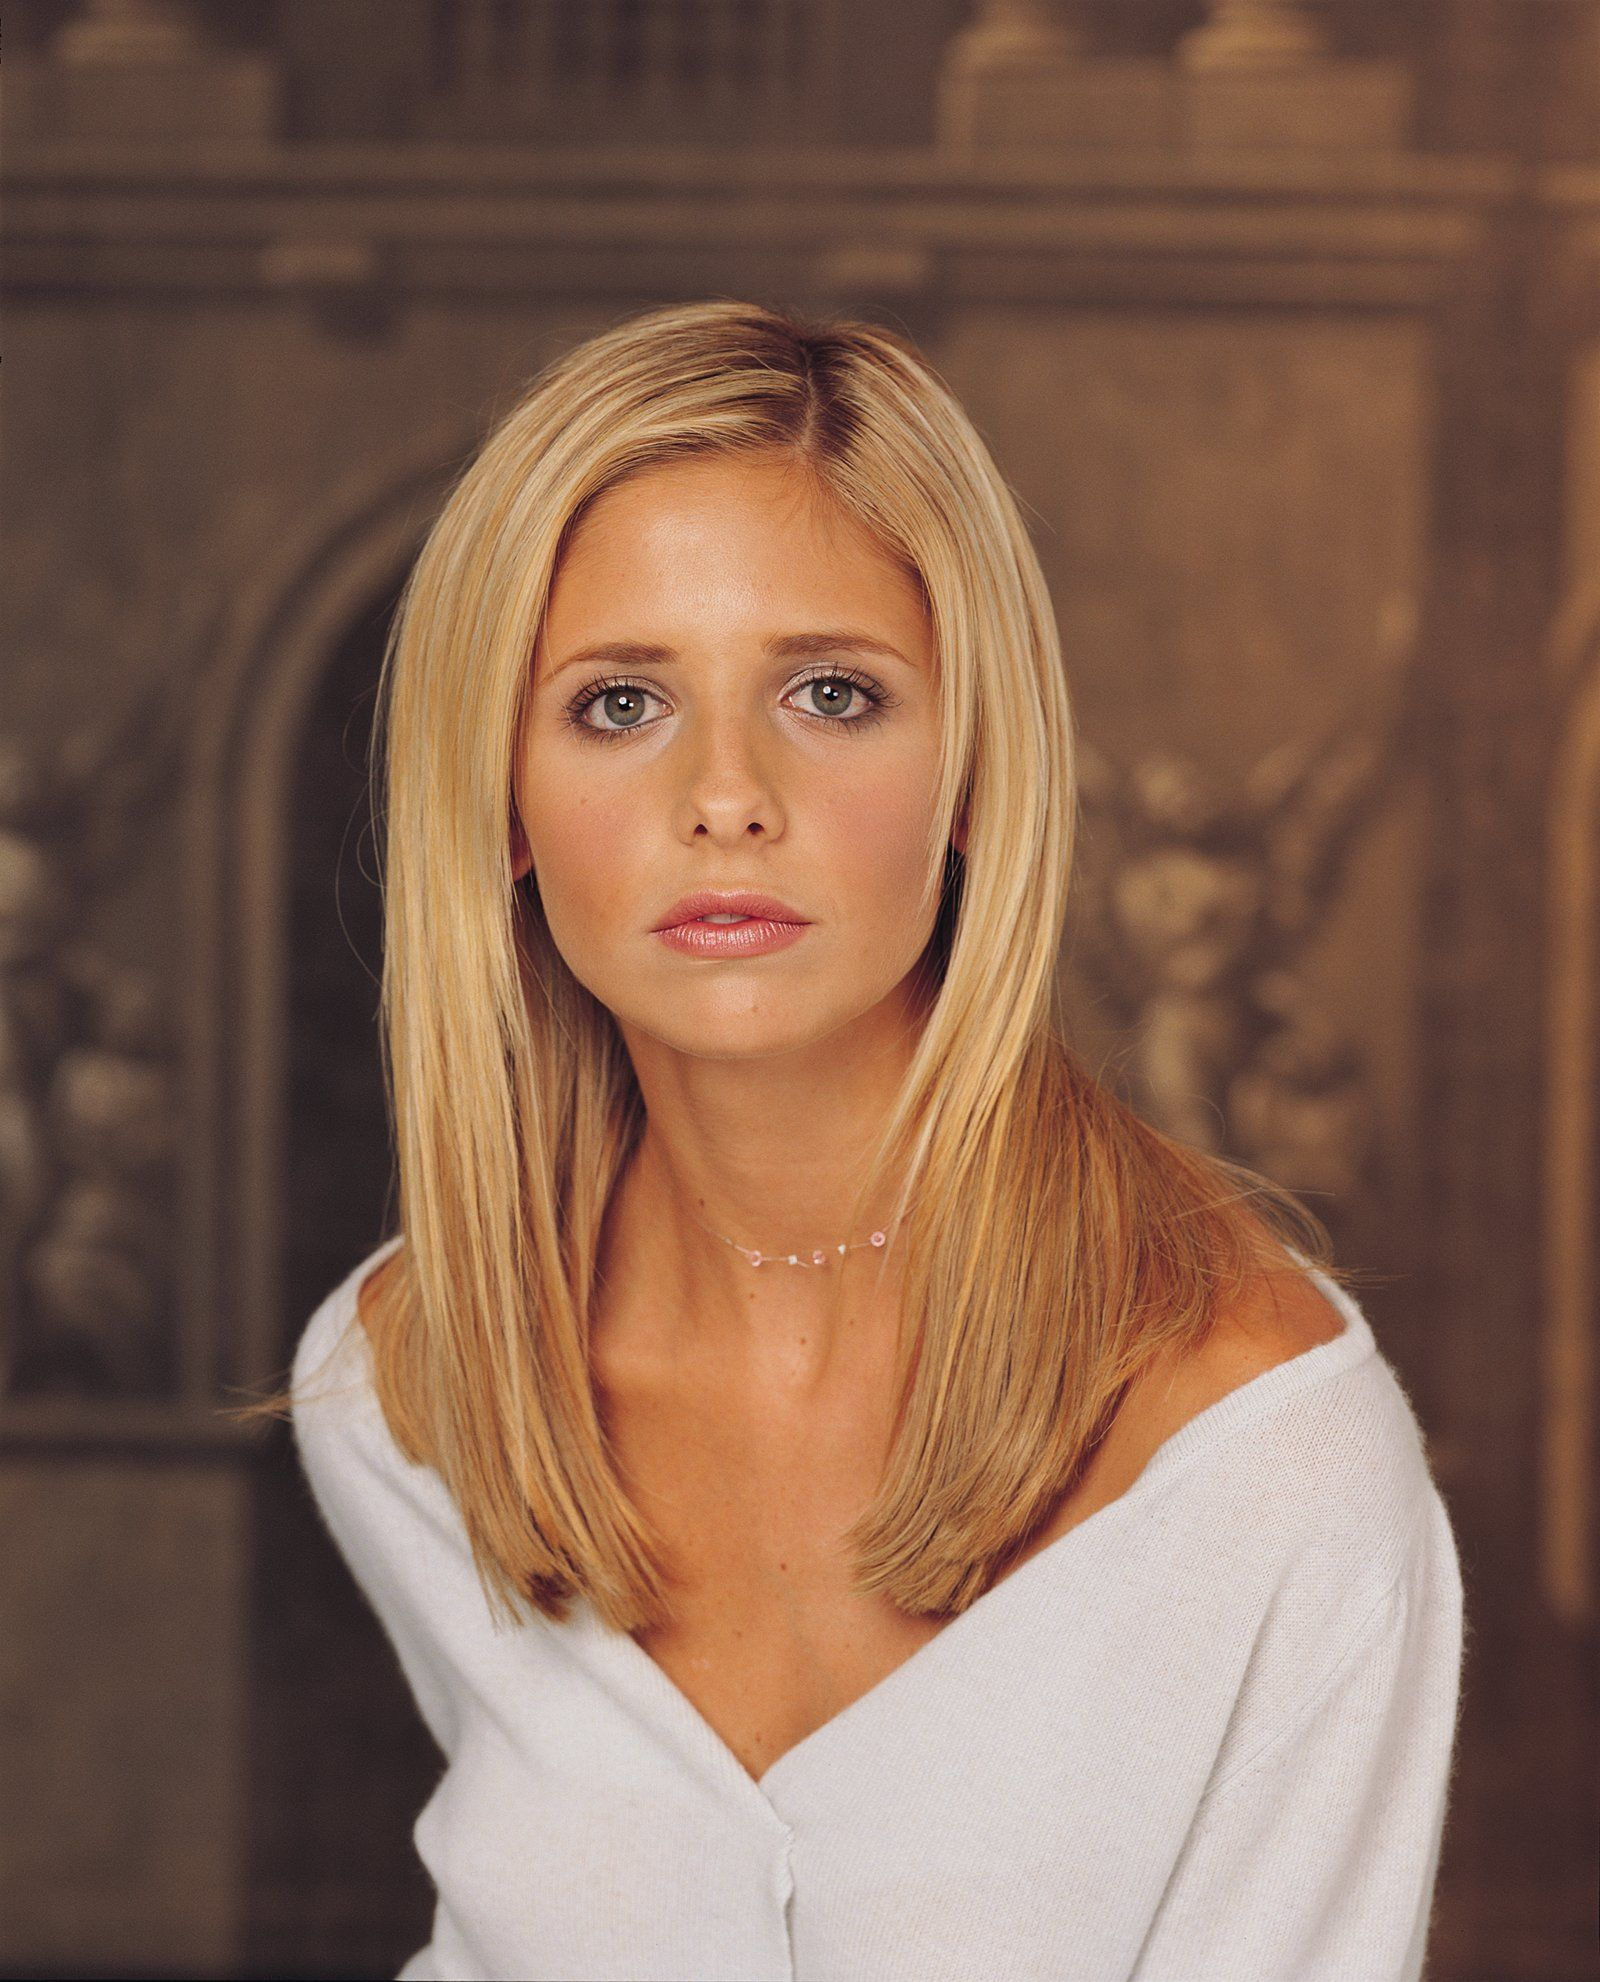 Buffy The Vampire Slayer Gallery 9 10 Dvdbash